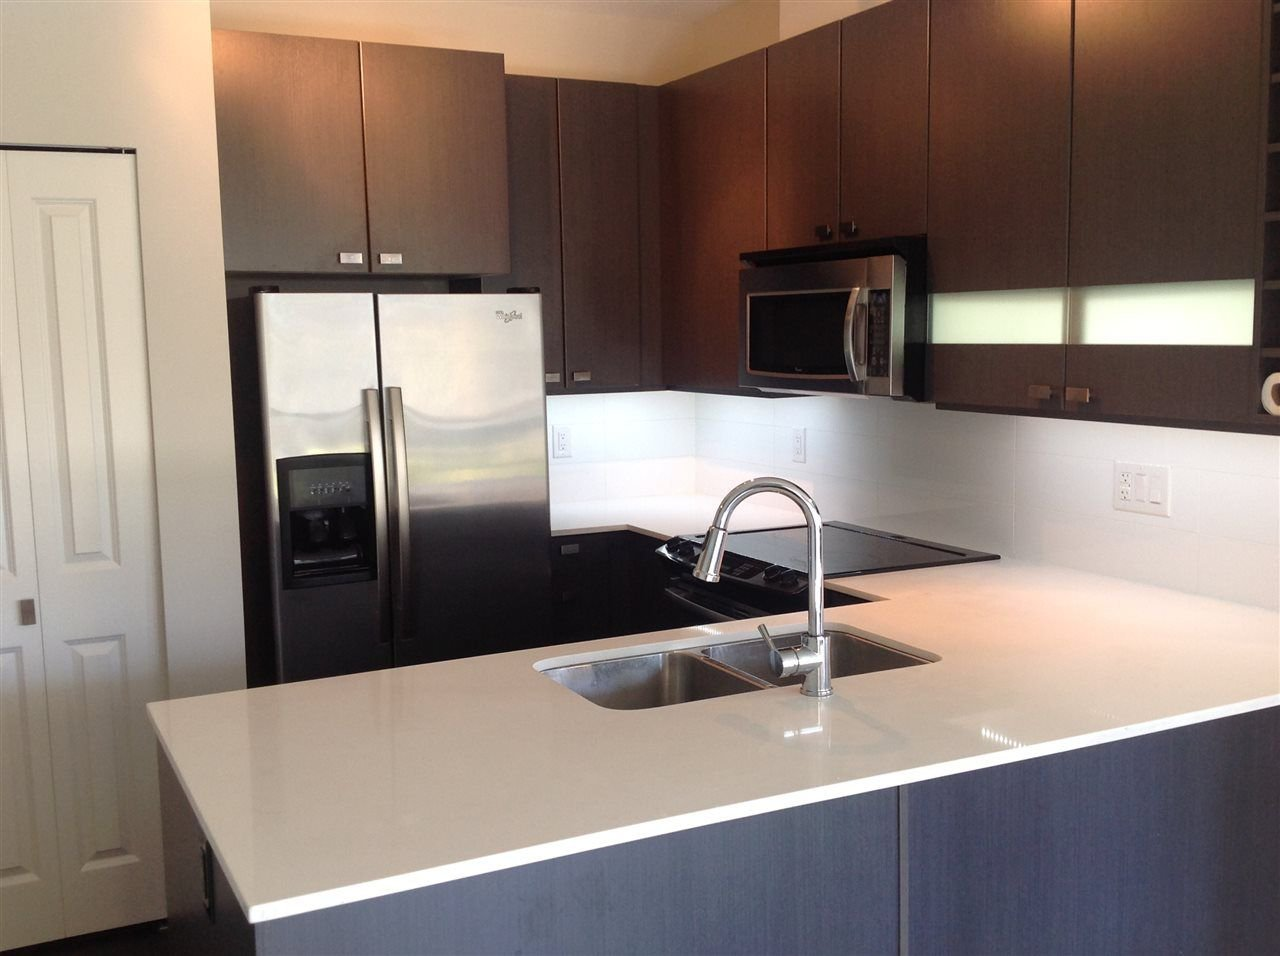 """Photo 3: Photos: 303 5655 210A Street in Langley: Salmon River Condo for sale in """"CORNERSTONE NORTH"""" : MLS®# R2267414"""